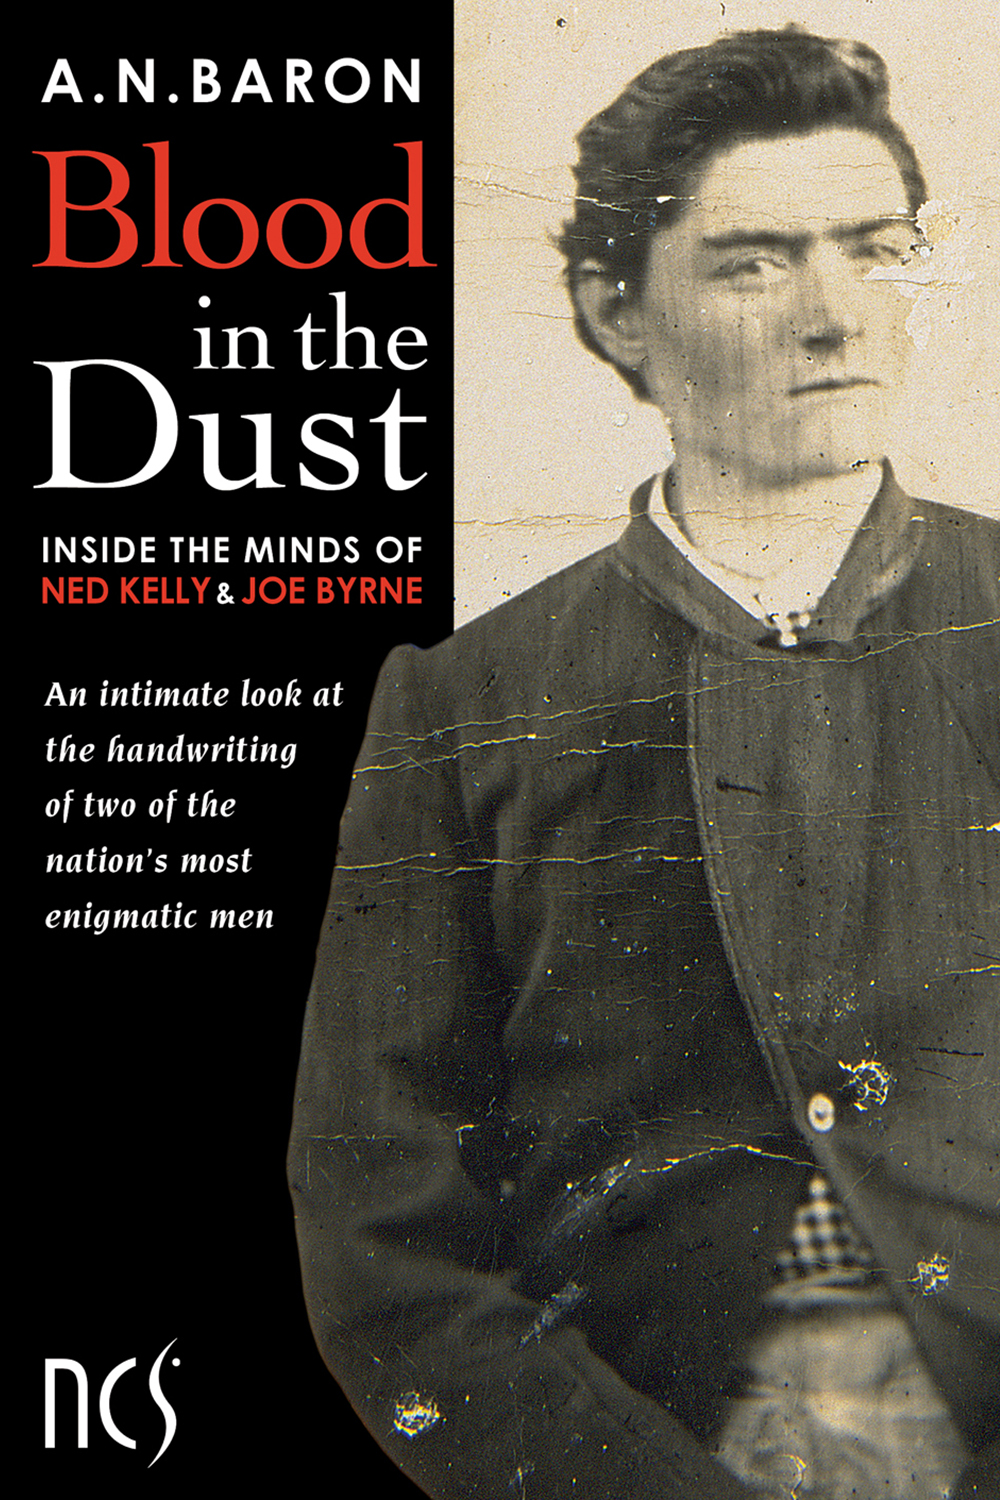 Blood in the Dust by A.N. Baron